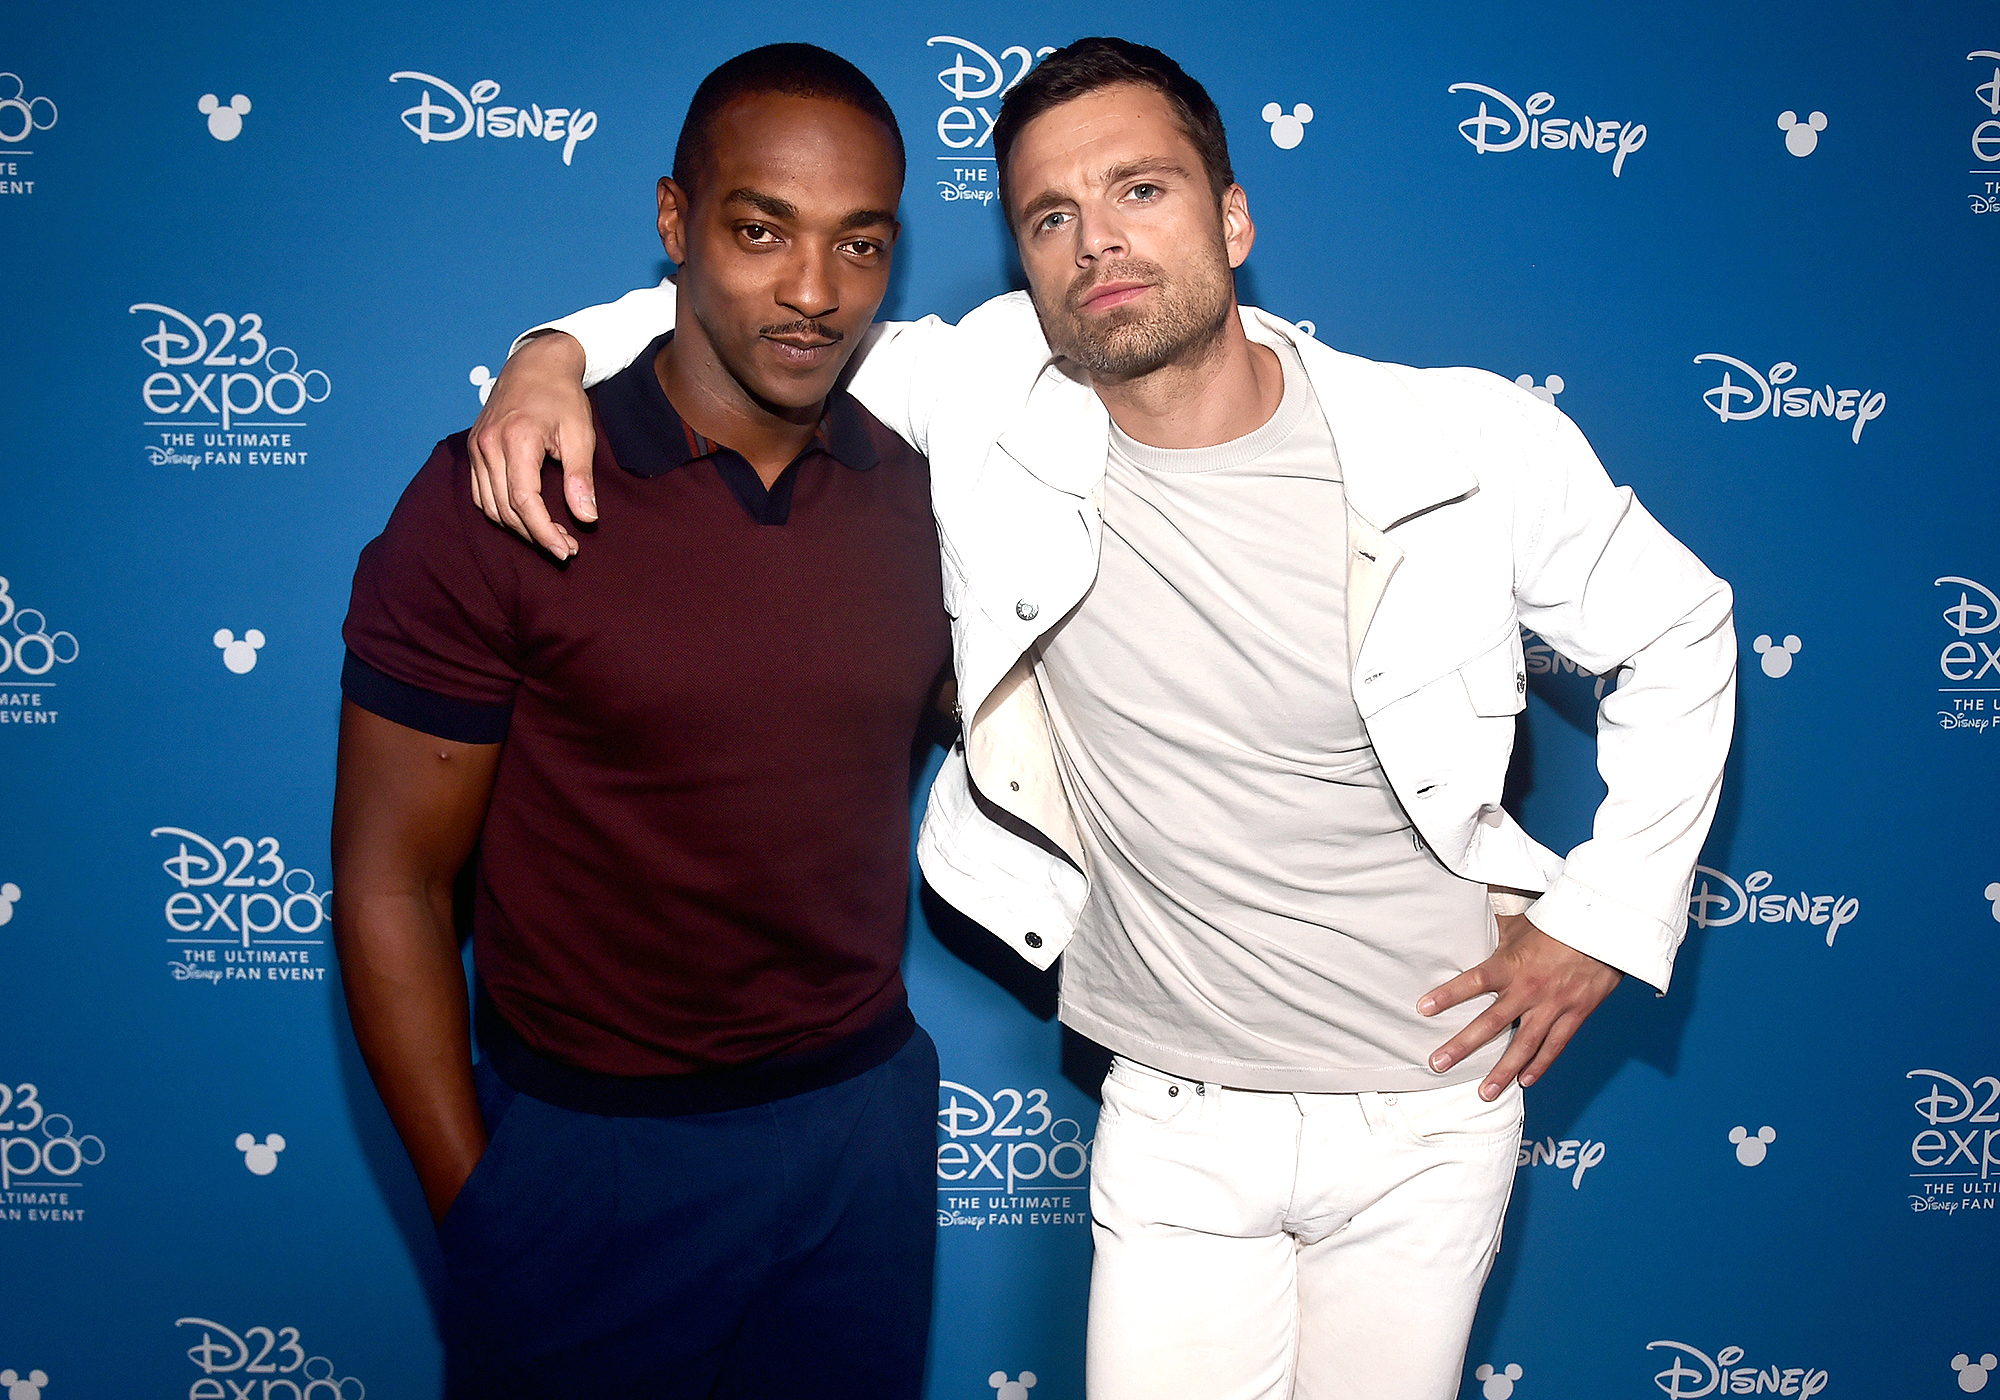 Anthony Mackie and Sebastian Stan of 'The Falcon and The Winter Soldier' took part today in the Disney+ Showcase at Disney's D23 EXPO 2019